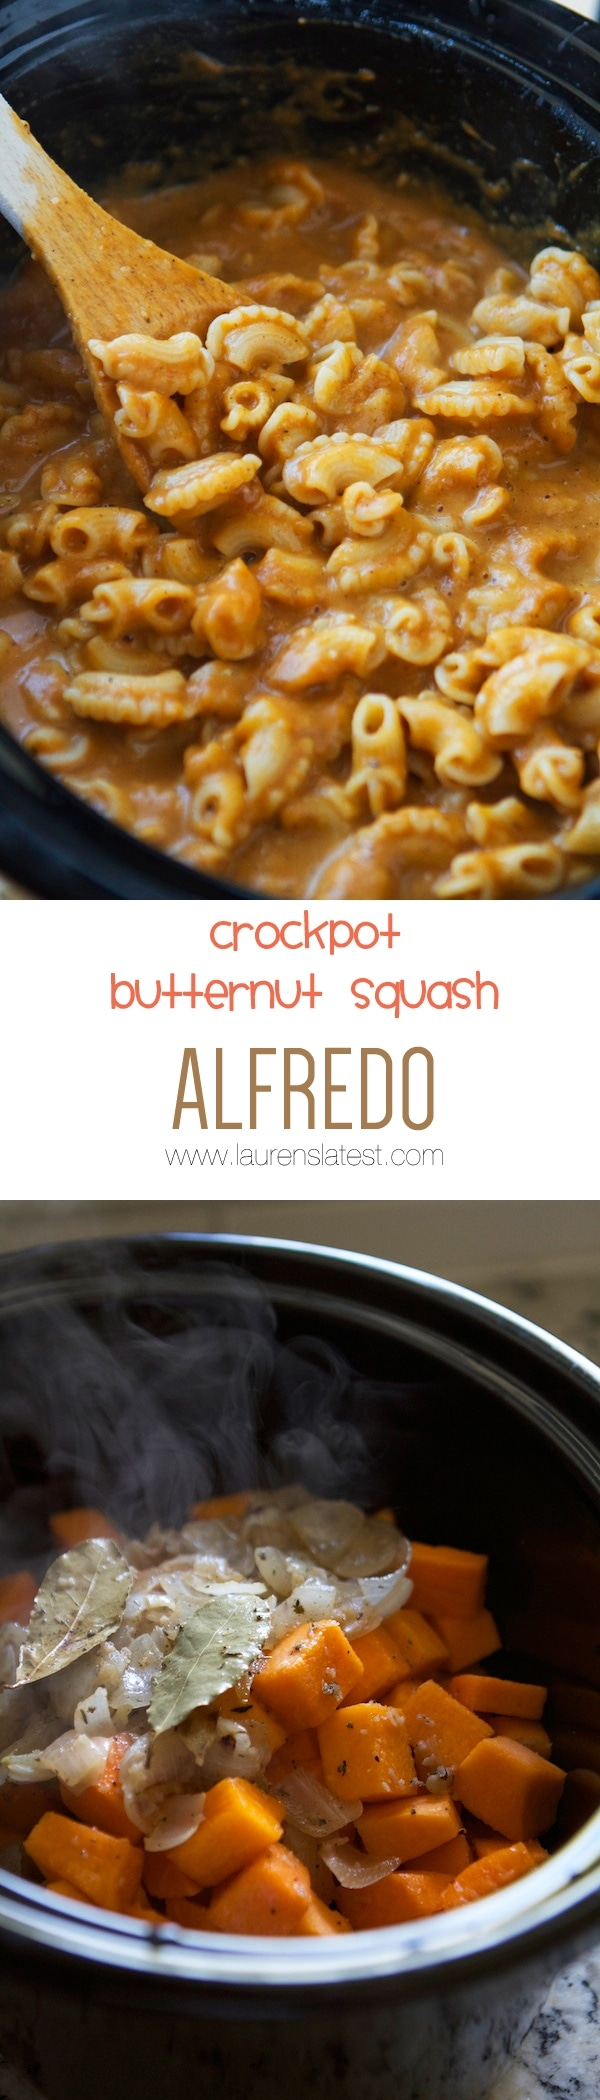 Crockpot Butternut squash collage